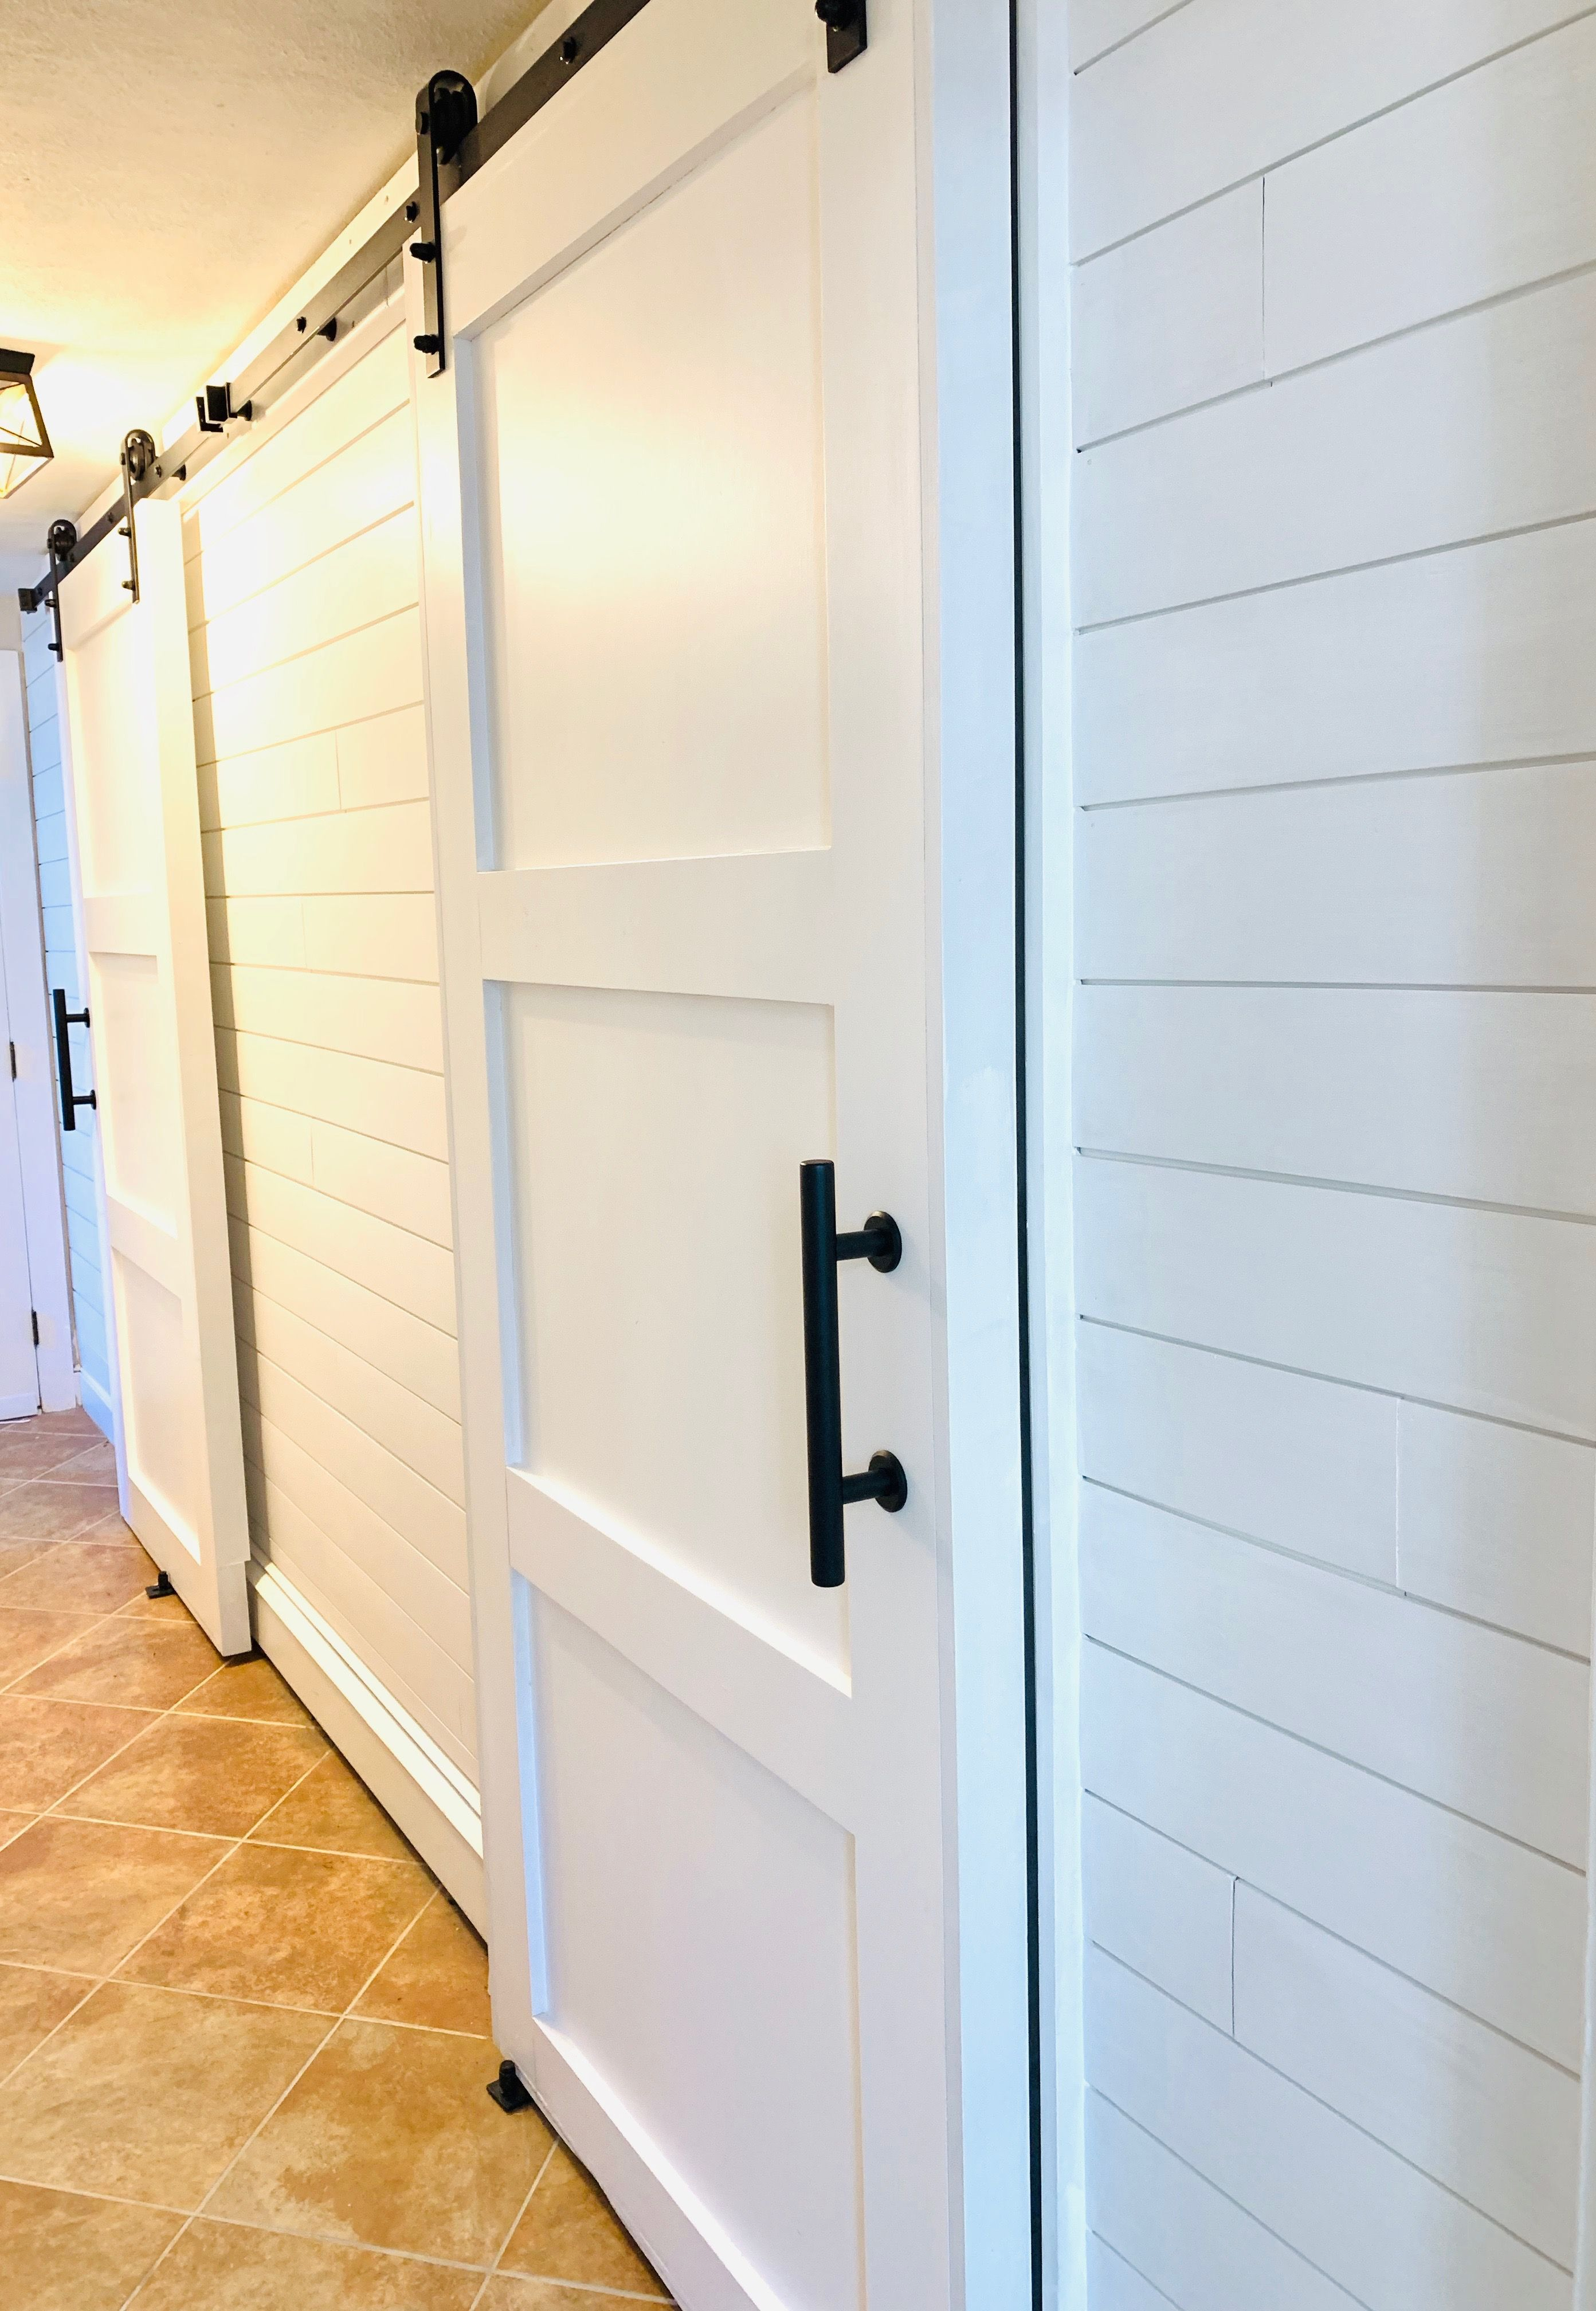 Beautiful Modern Farmhouse Barn Doors Hung Over Baseboard Heating Check Out The Tutorial Modern Farmhouse Diy Modern Barn Door Barn Door